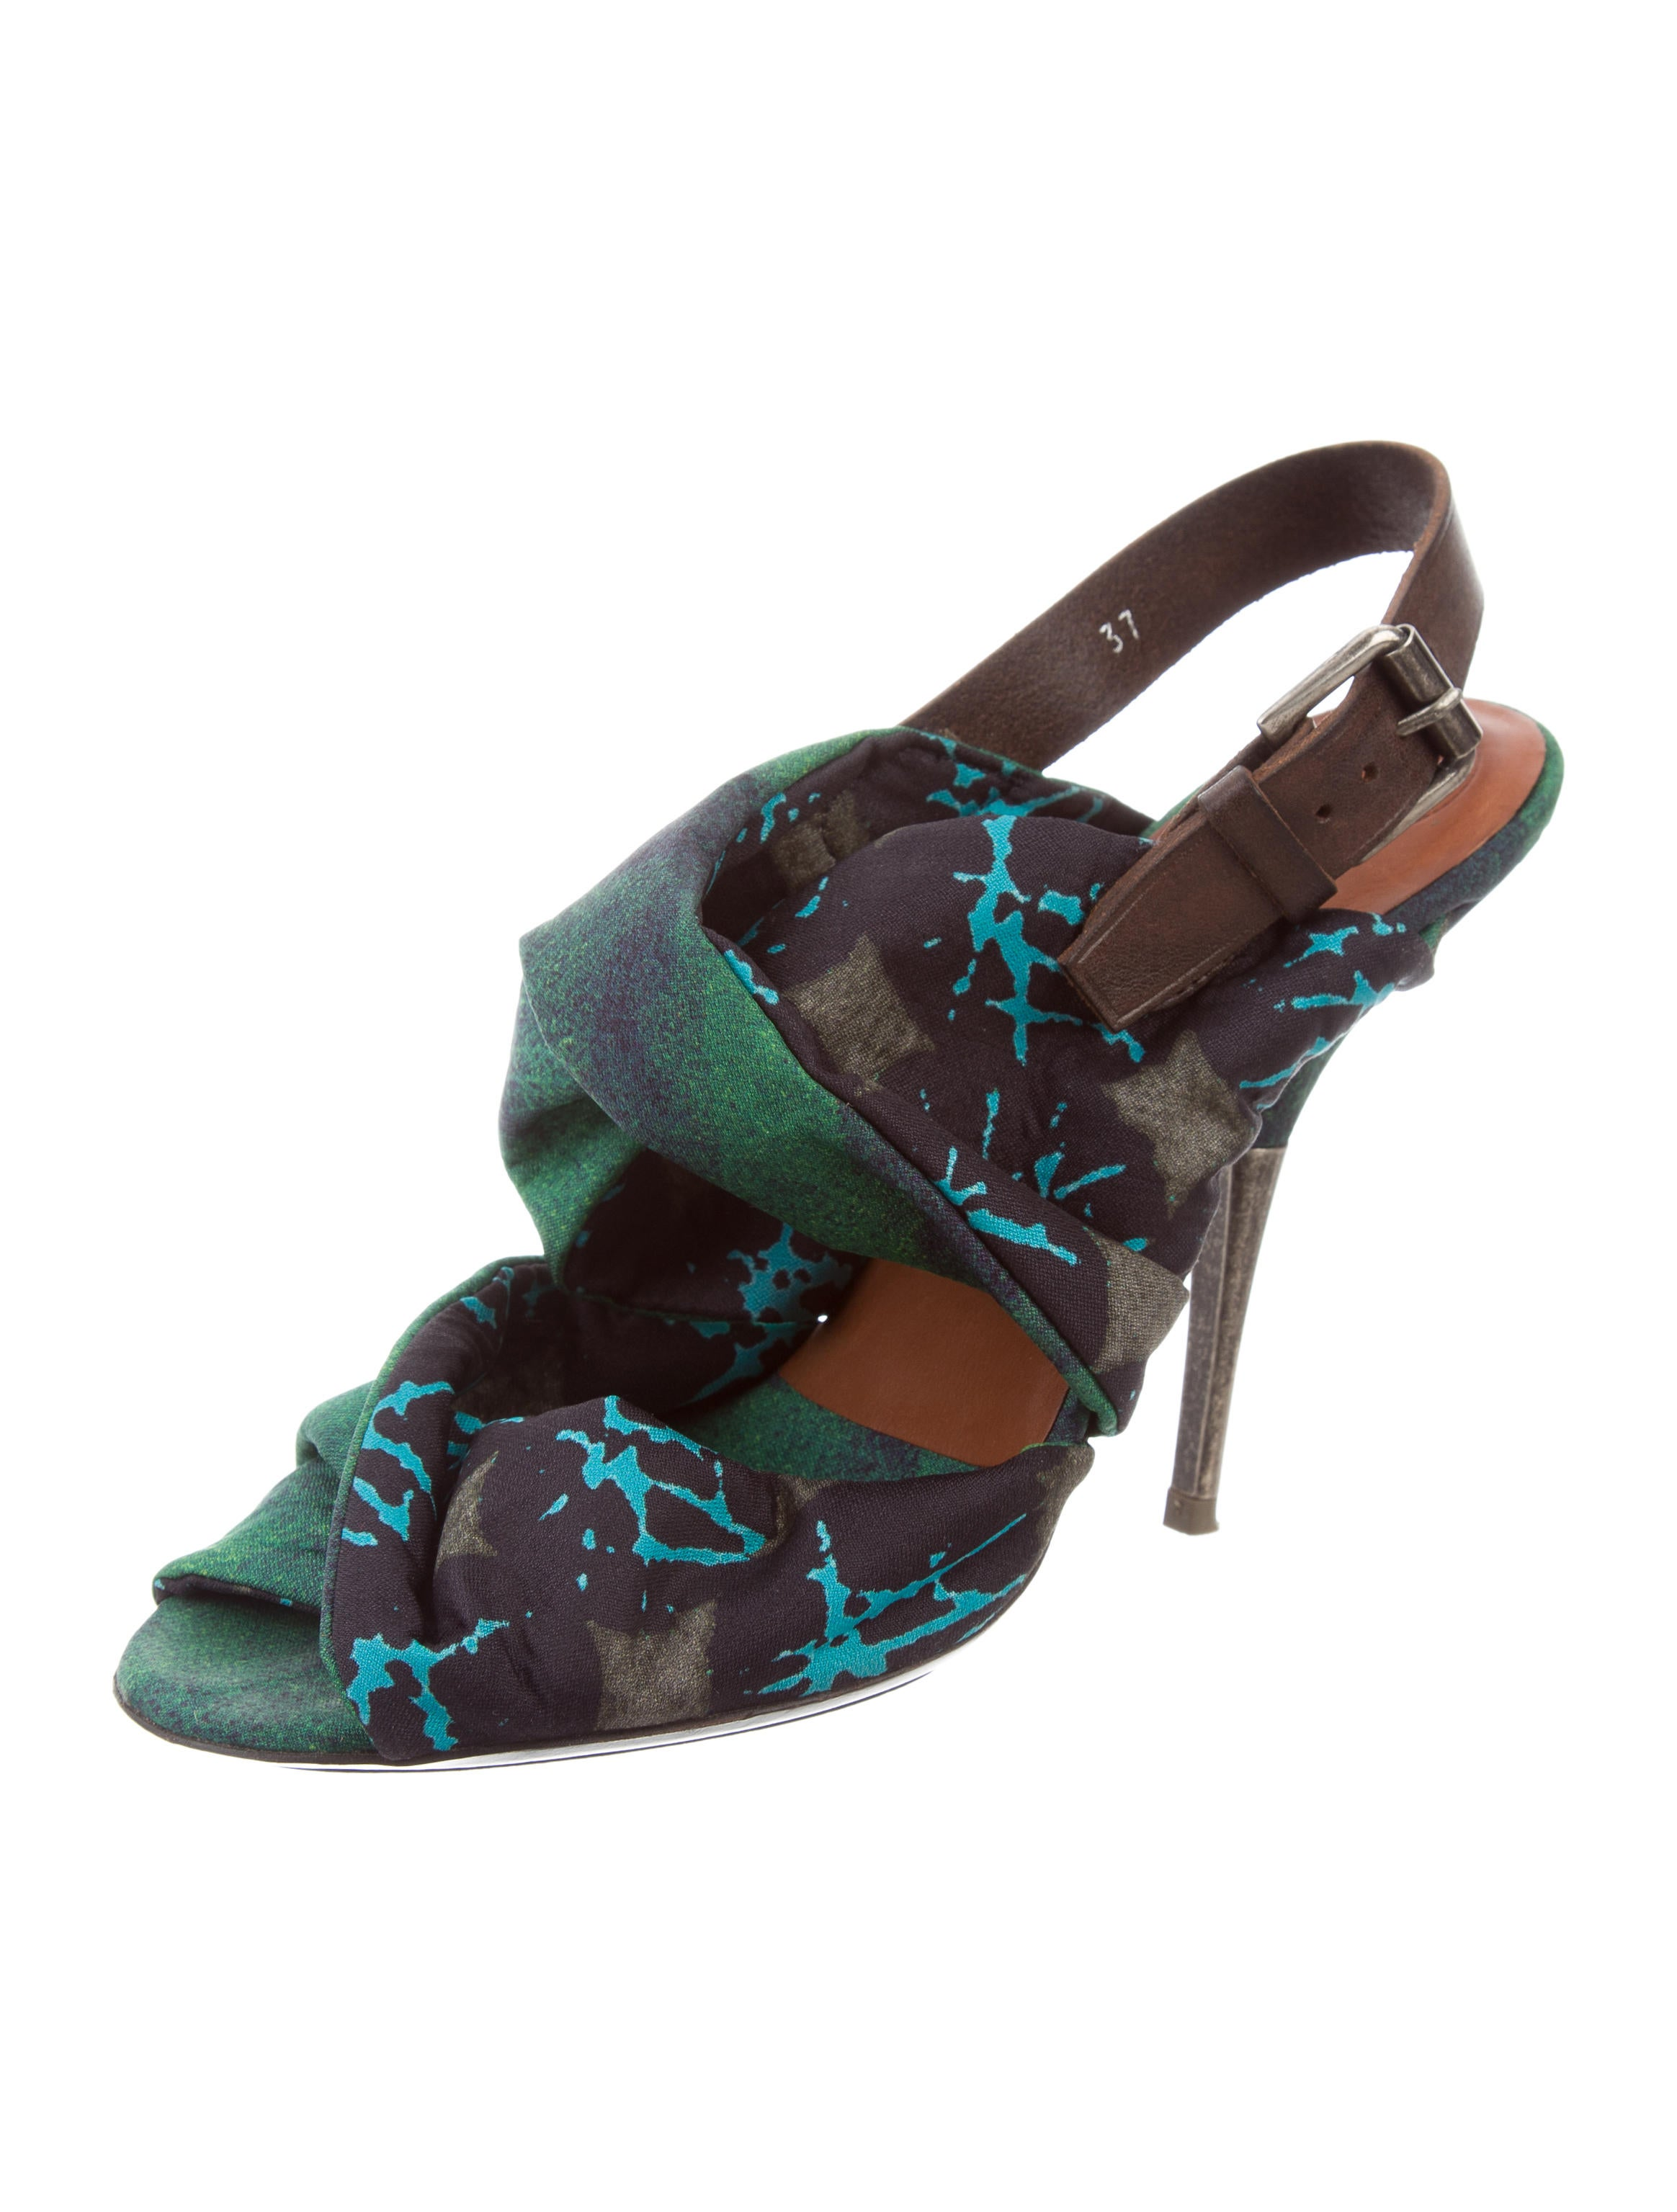 Dries Van Noten Woven Abstract Sandals sale free shipping wzIvQz